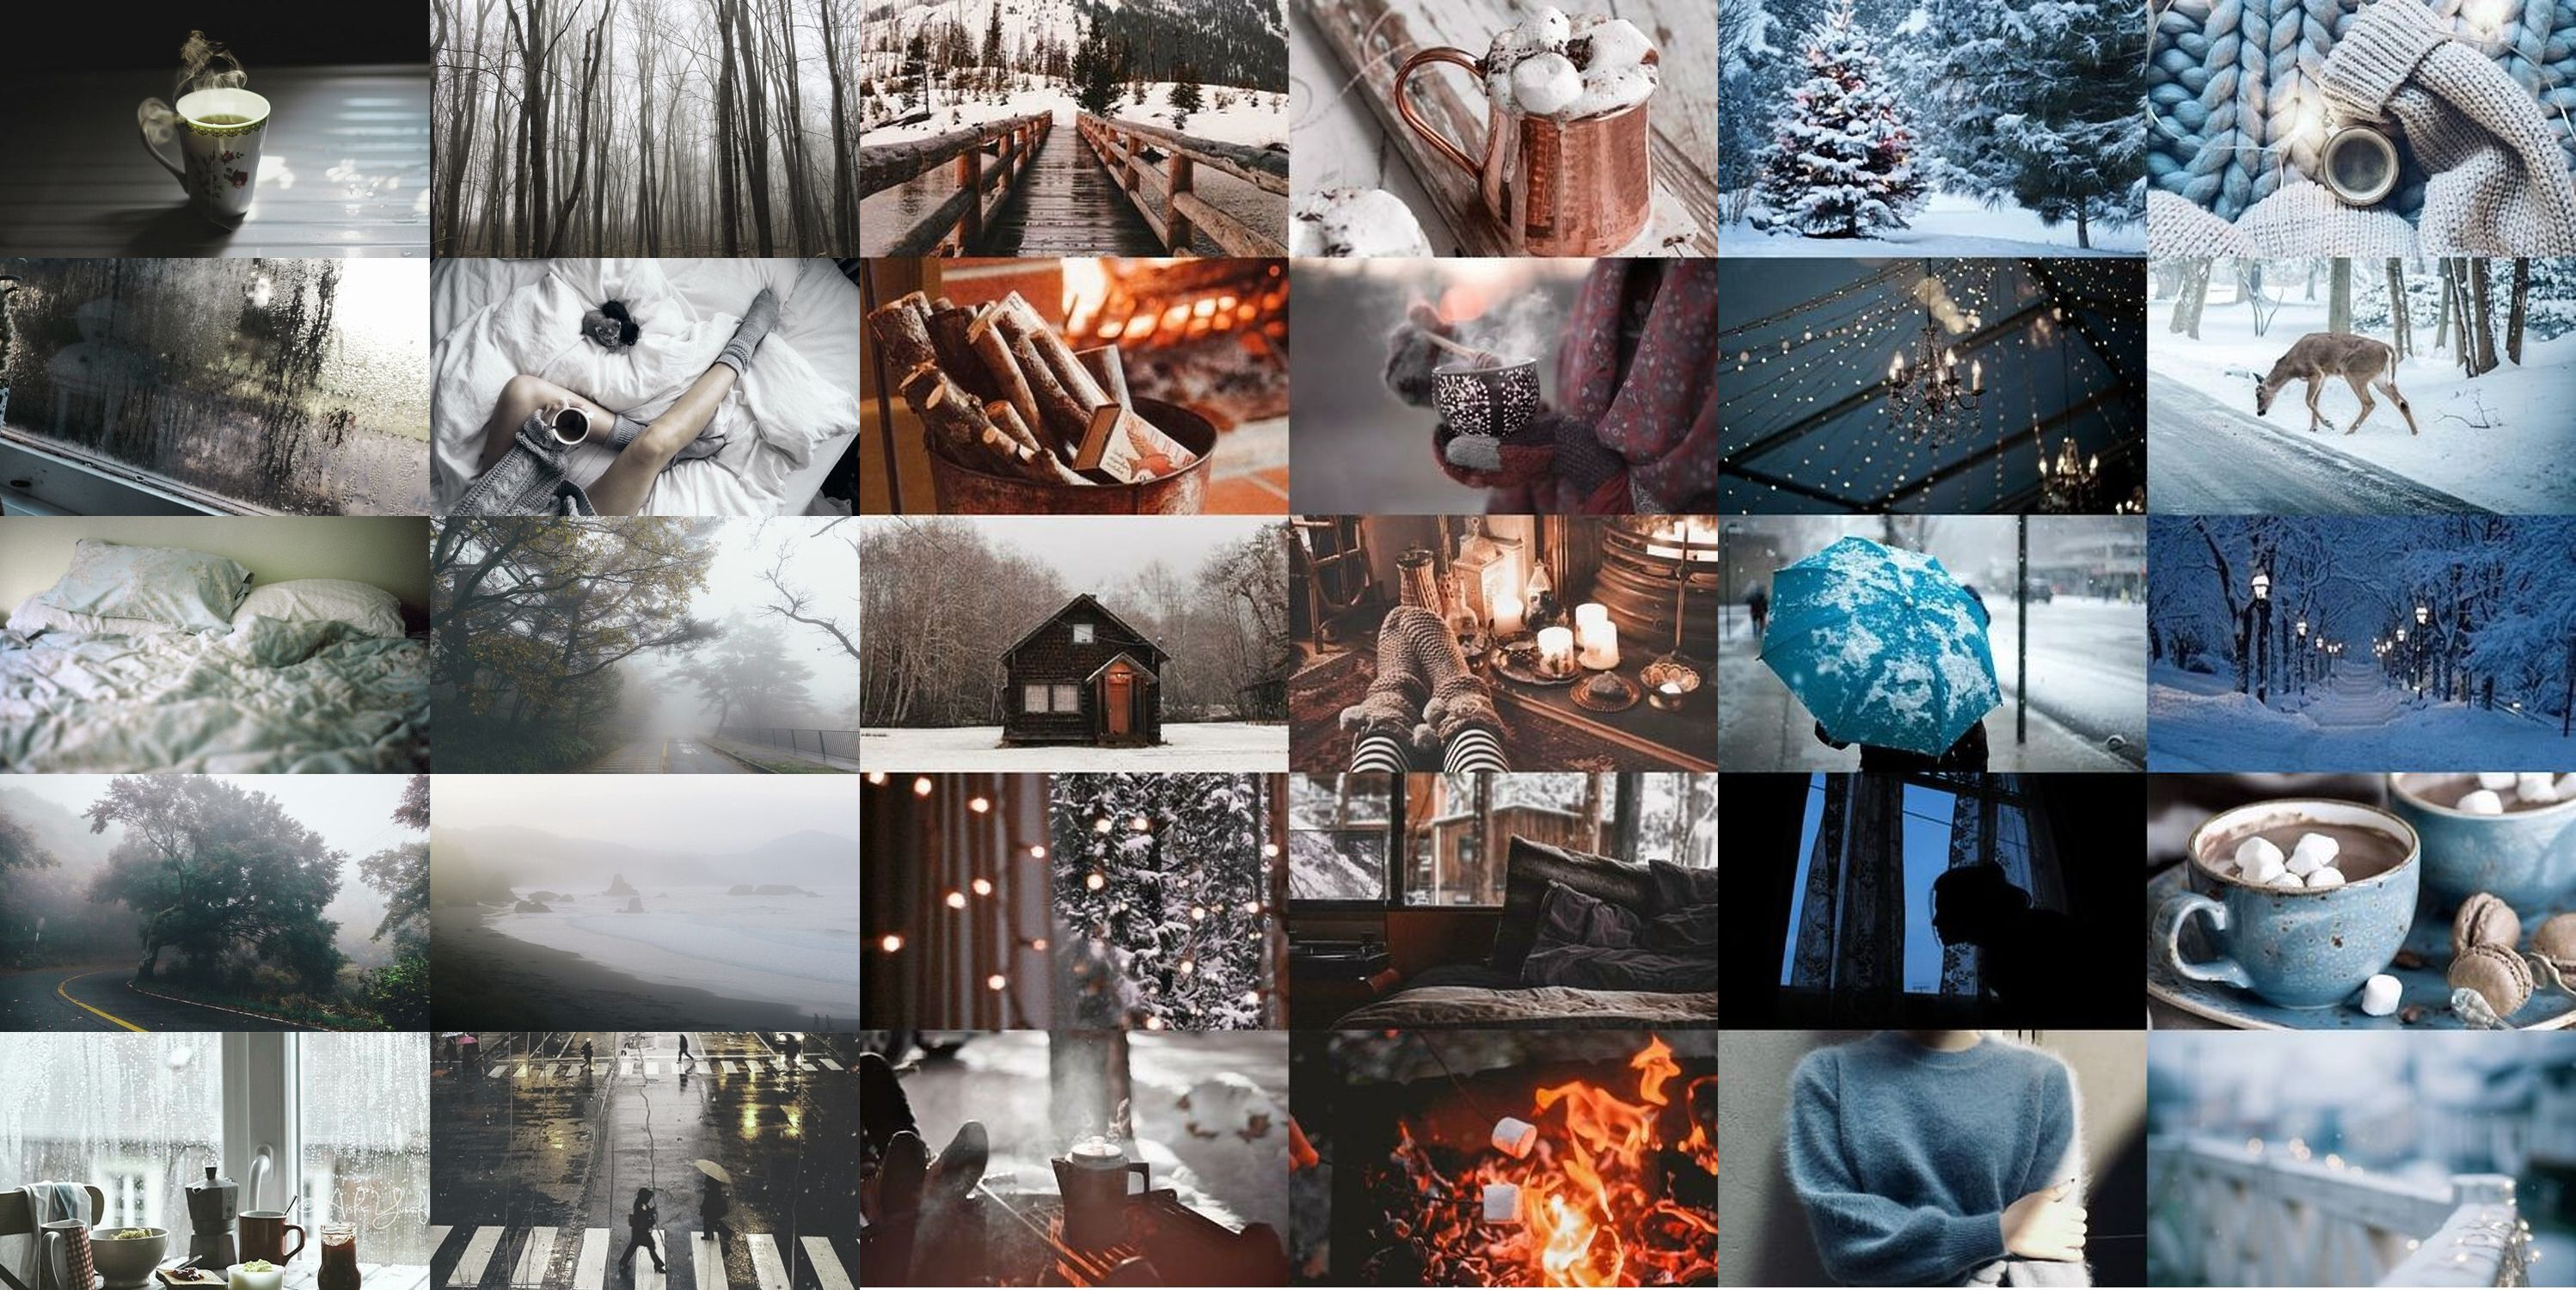 Winter Cozy Aesthetic Collage Winter Desktop Background Desktop Wallpaper Winter Wallpaper